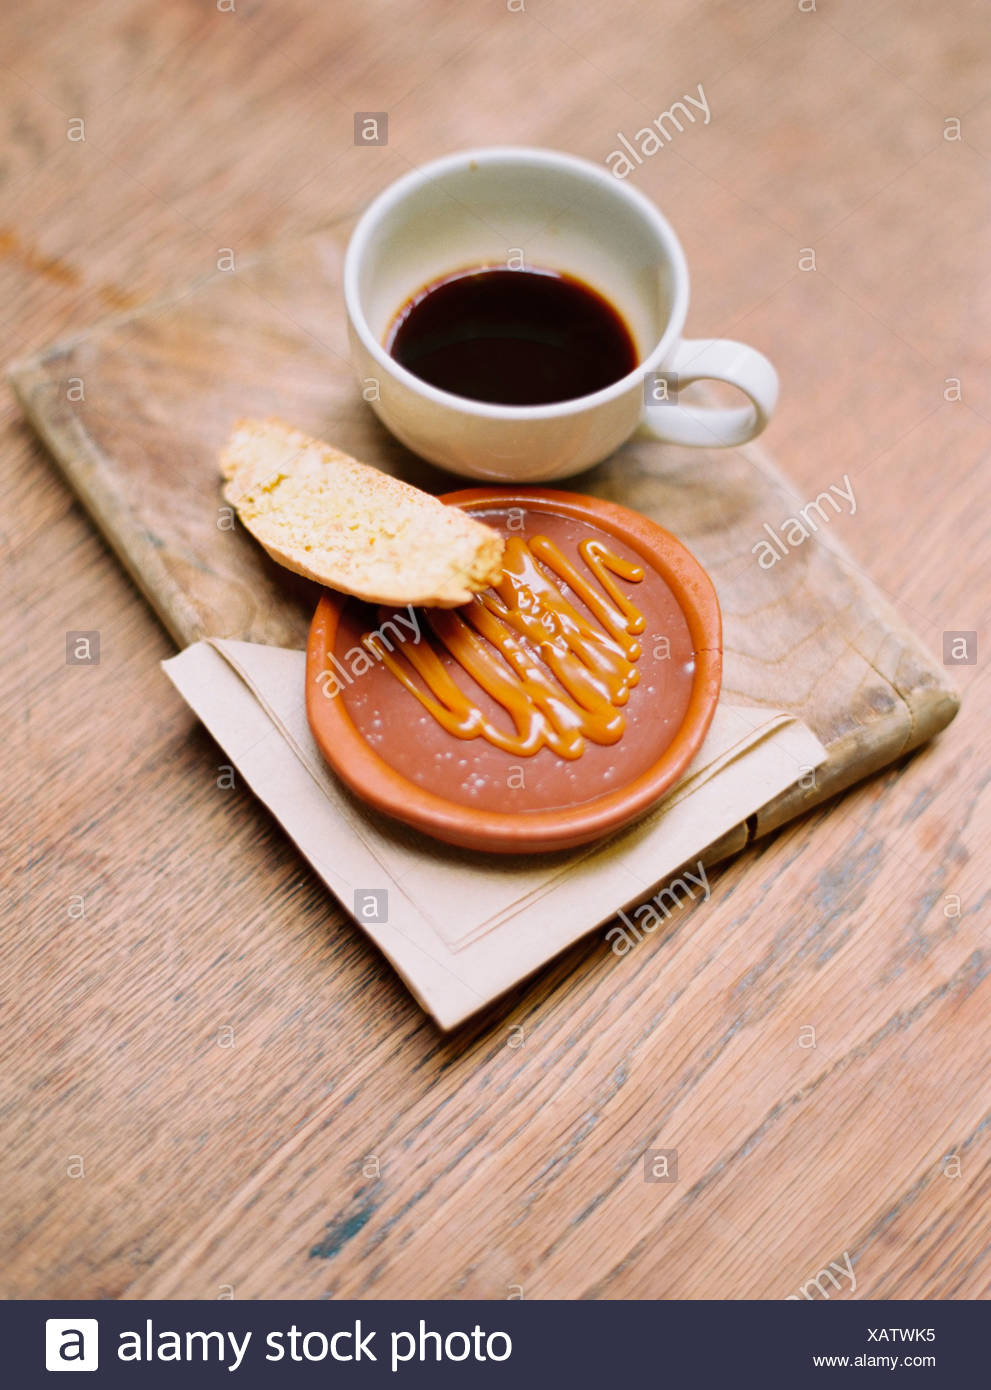 A slice of bread honey or sweet paste and a cup of coffee. - Stock Image